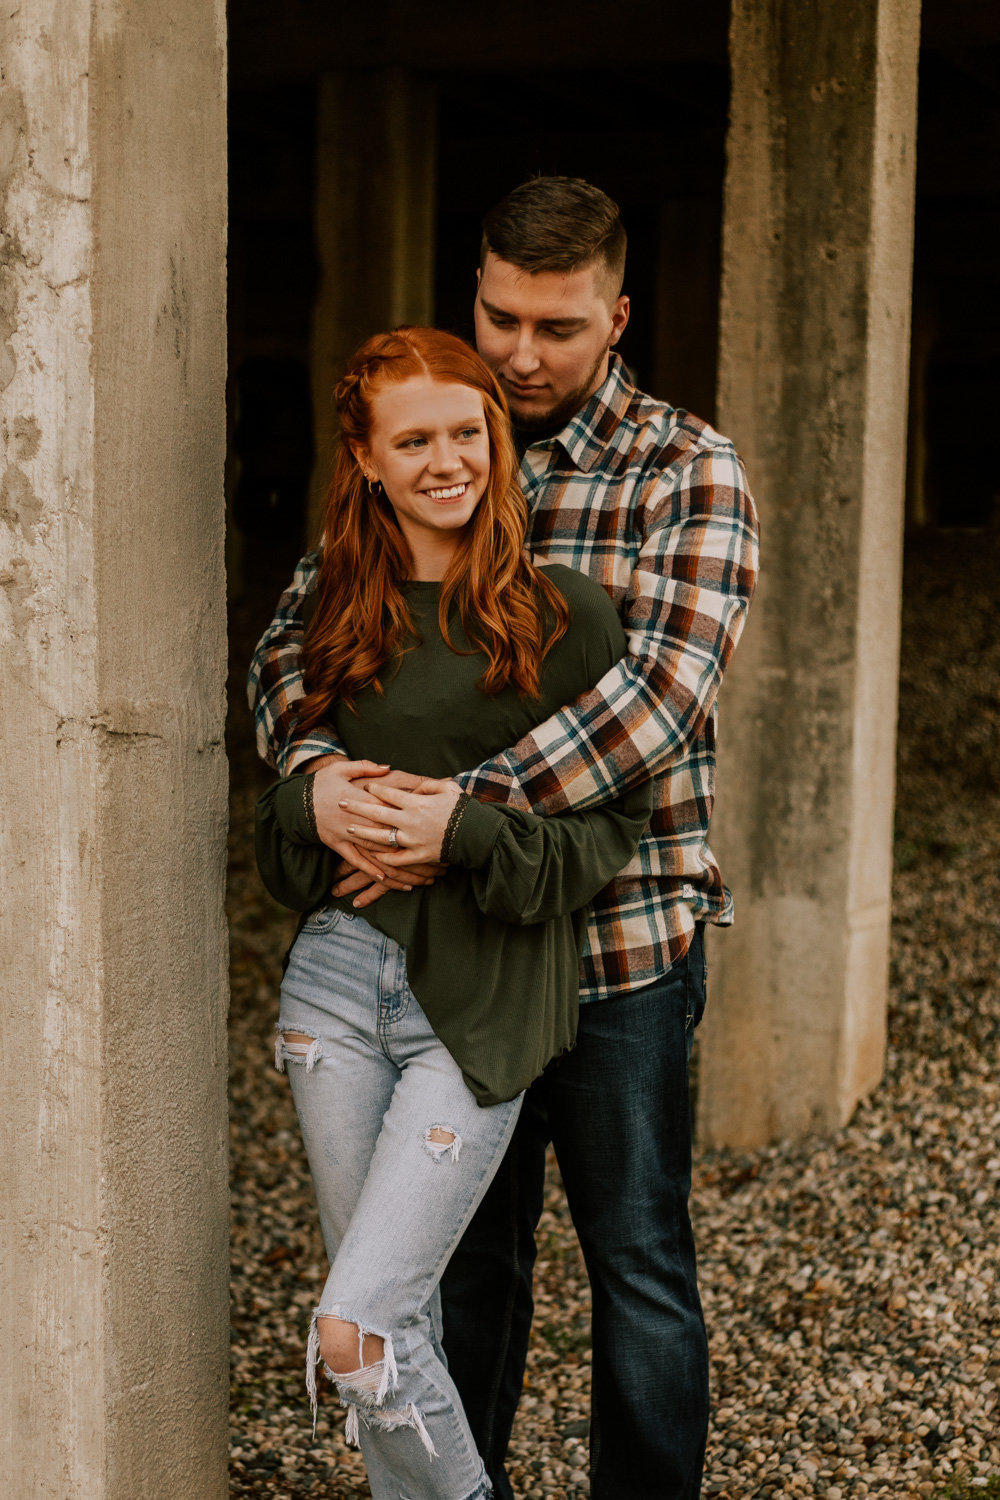 Puppy-Love-engagement-session-williamsport-falls-36